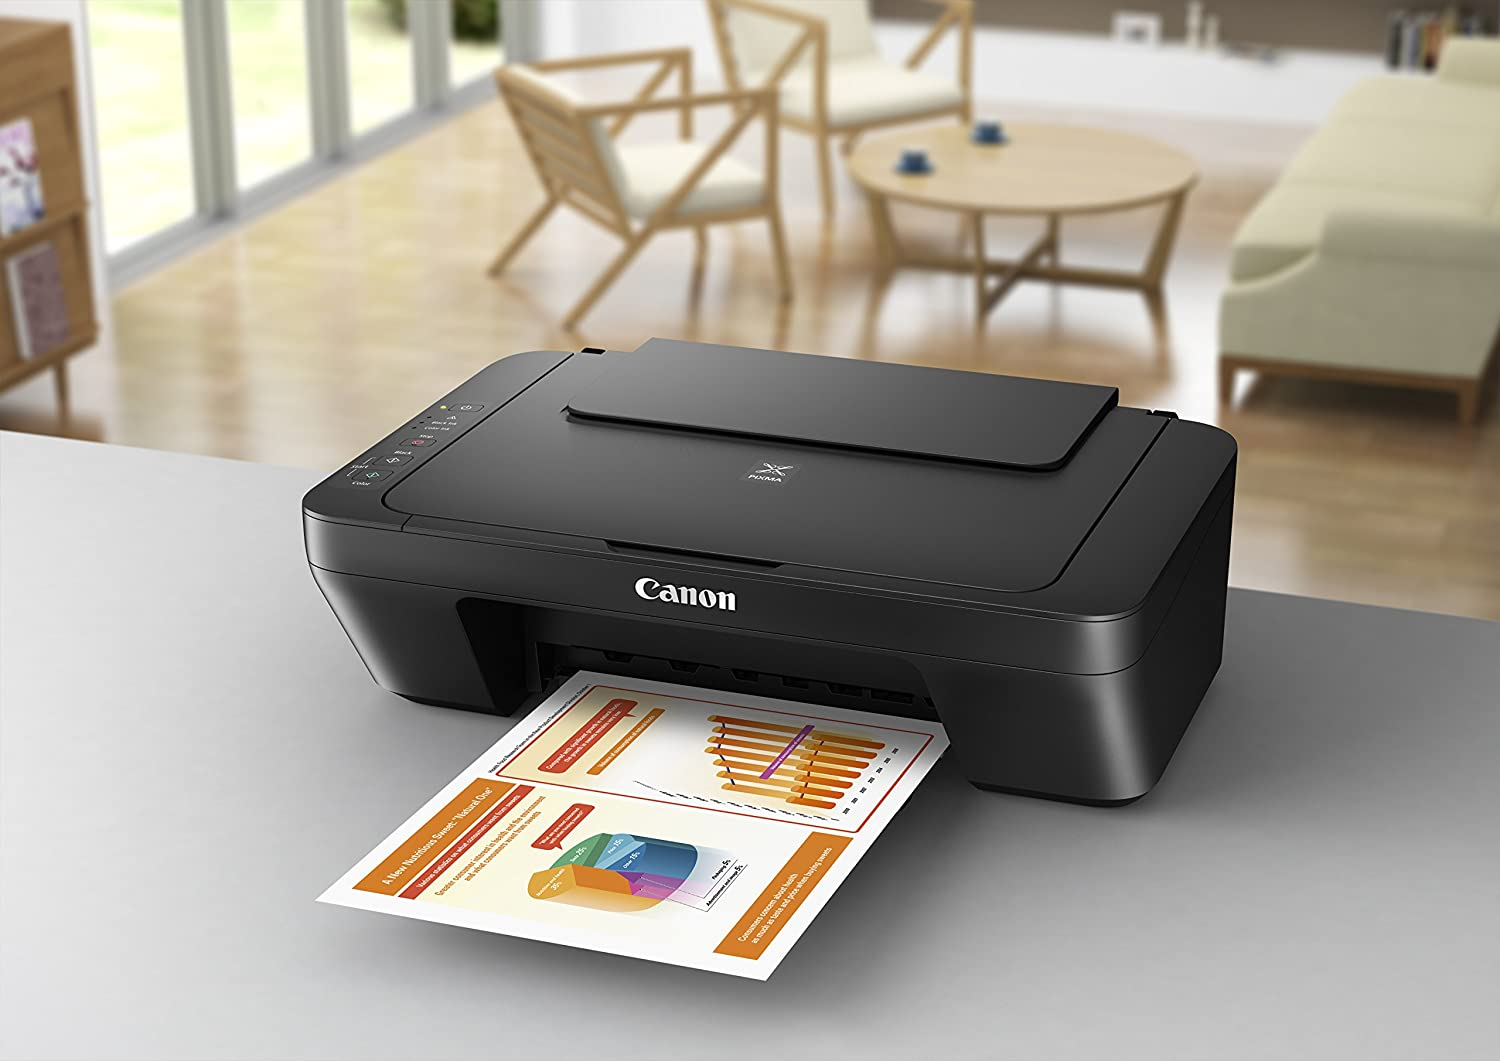 Canon Pixma Mg2525 Photo All In One Inkjet Printer With Scanner And